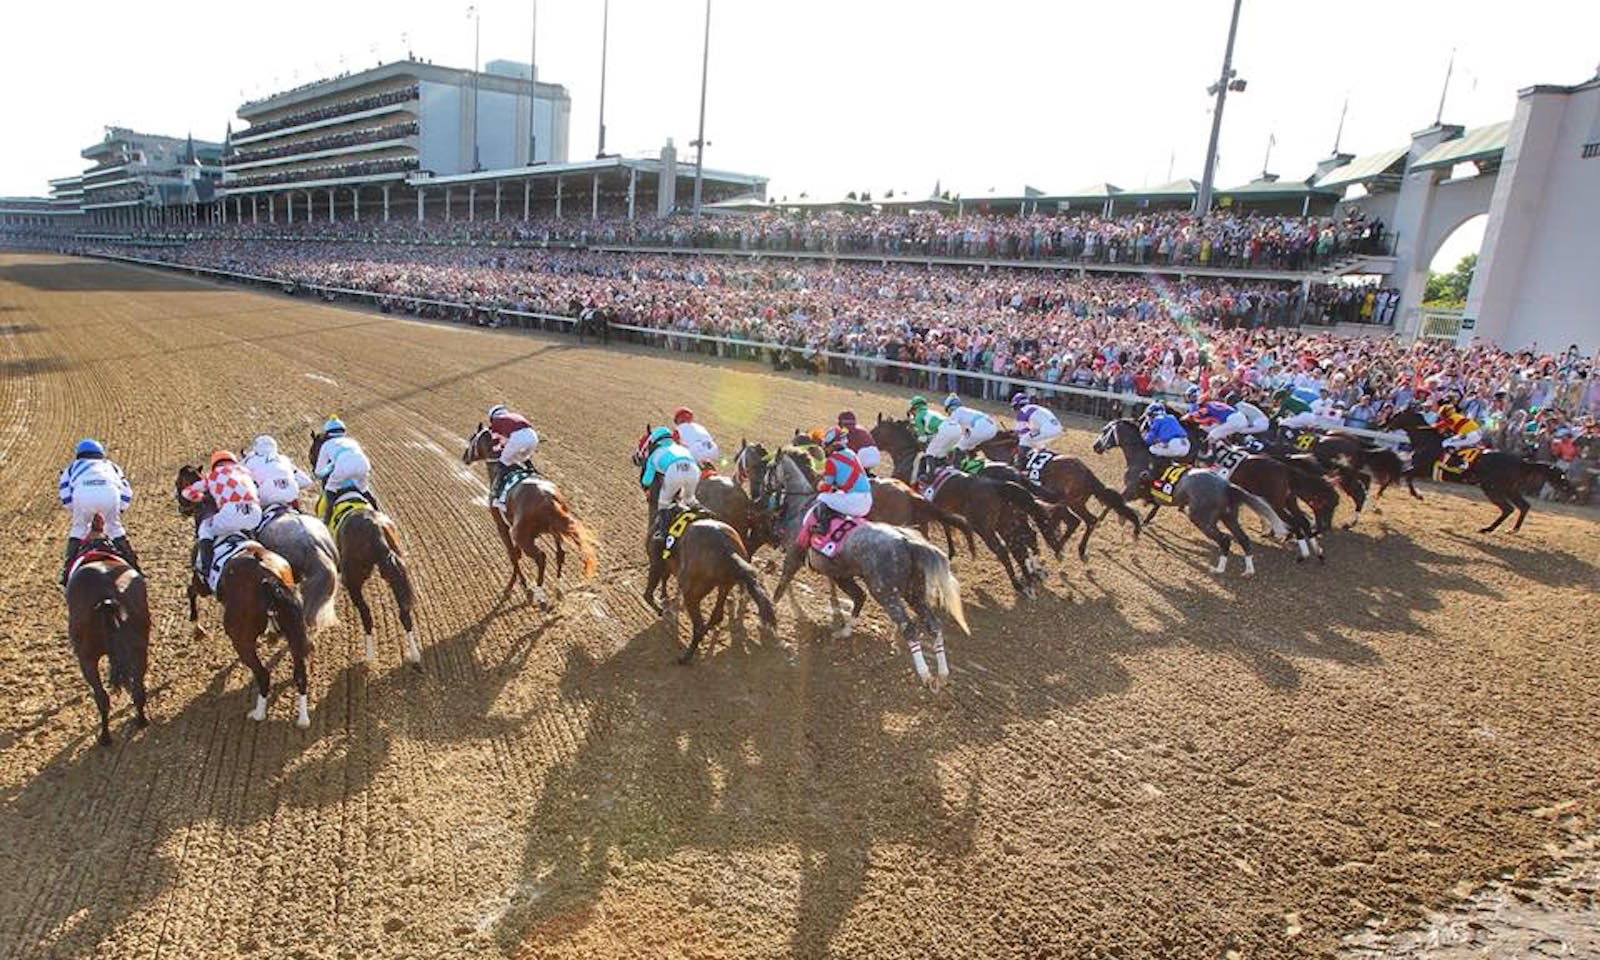 2018 Major Events; Kentucky Derby